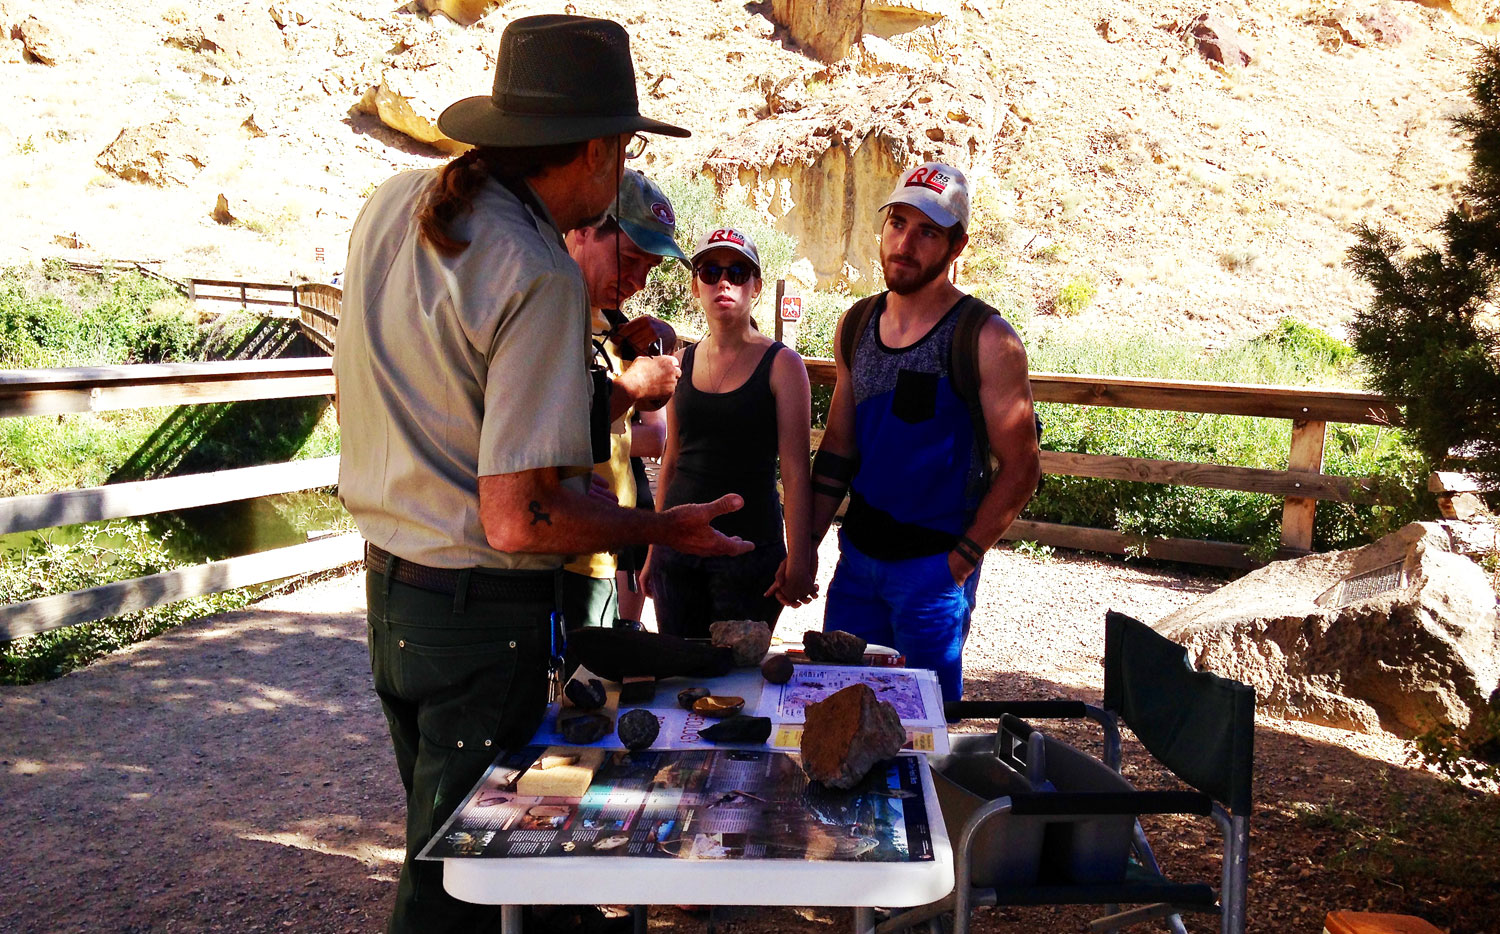 Smith Rock State Park Interpretative Naturalist David Vick answers questions about the park's explosive past.